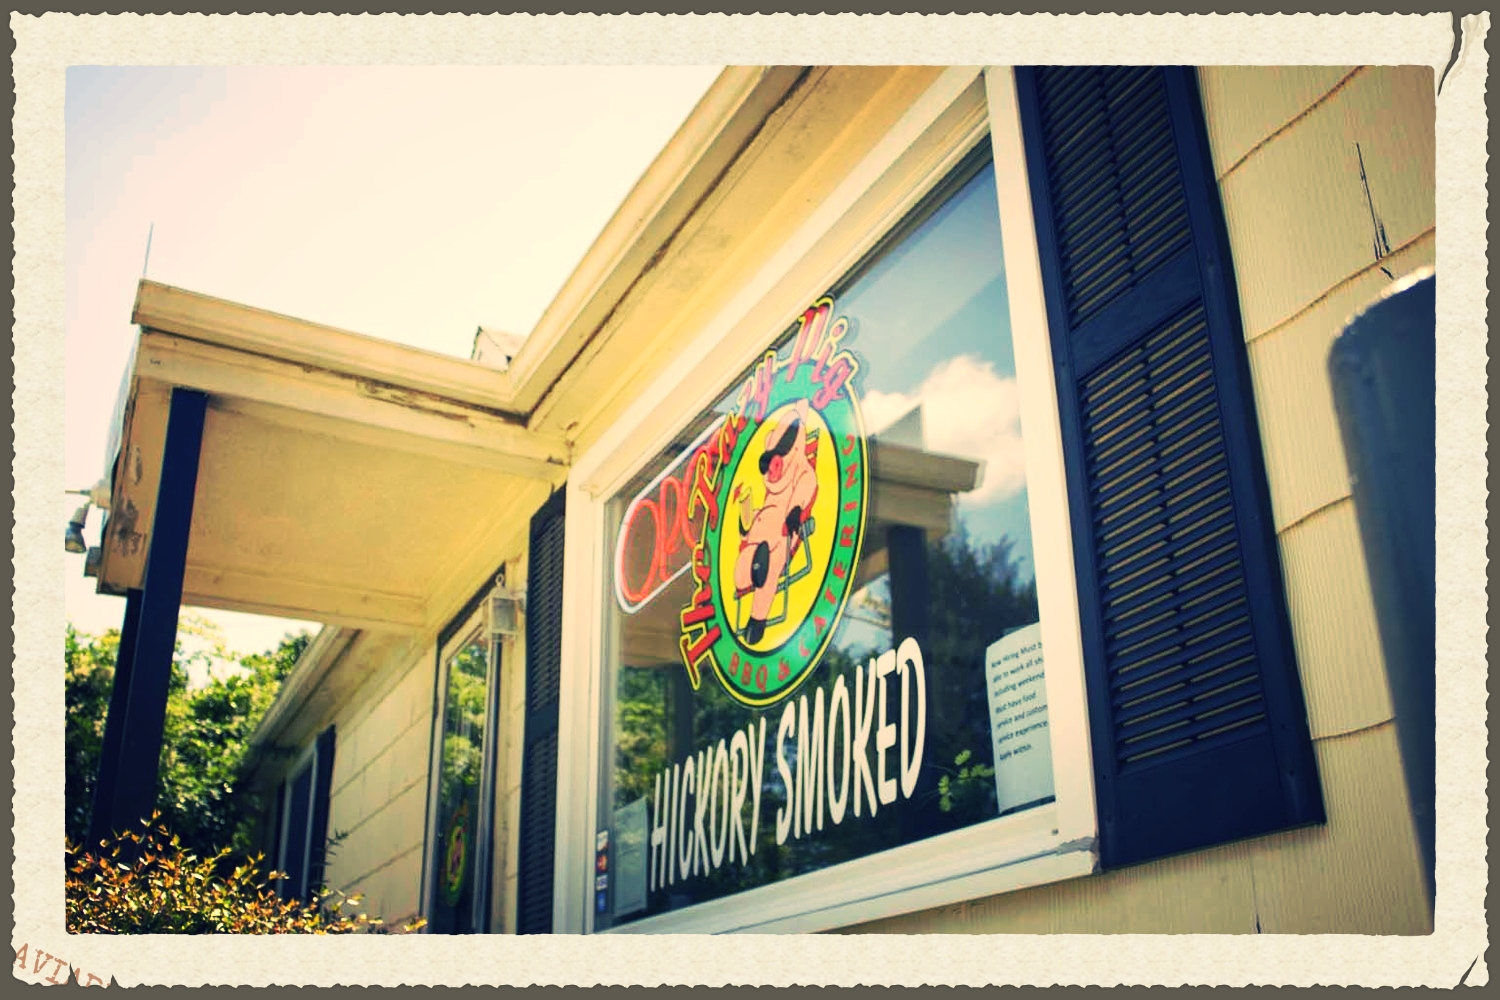 The lazy pig bbq carry-out located in dumfries, va